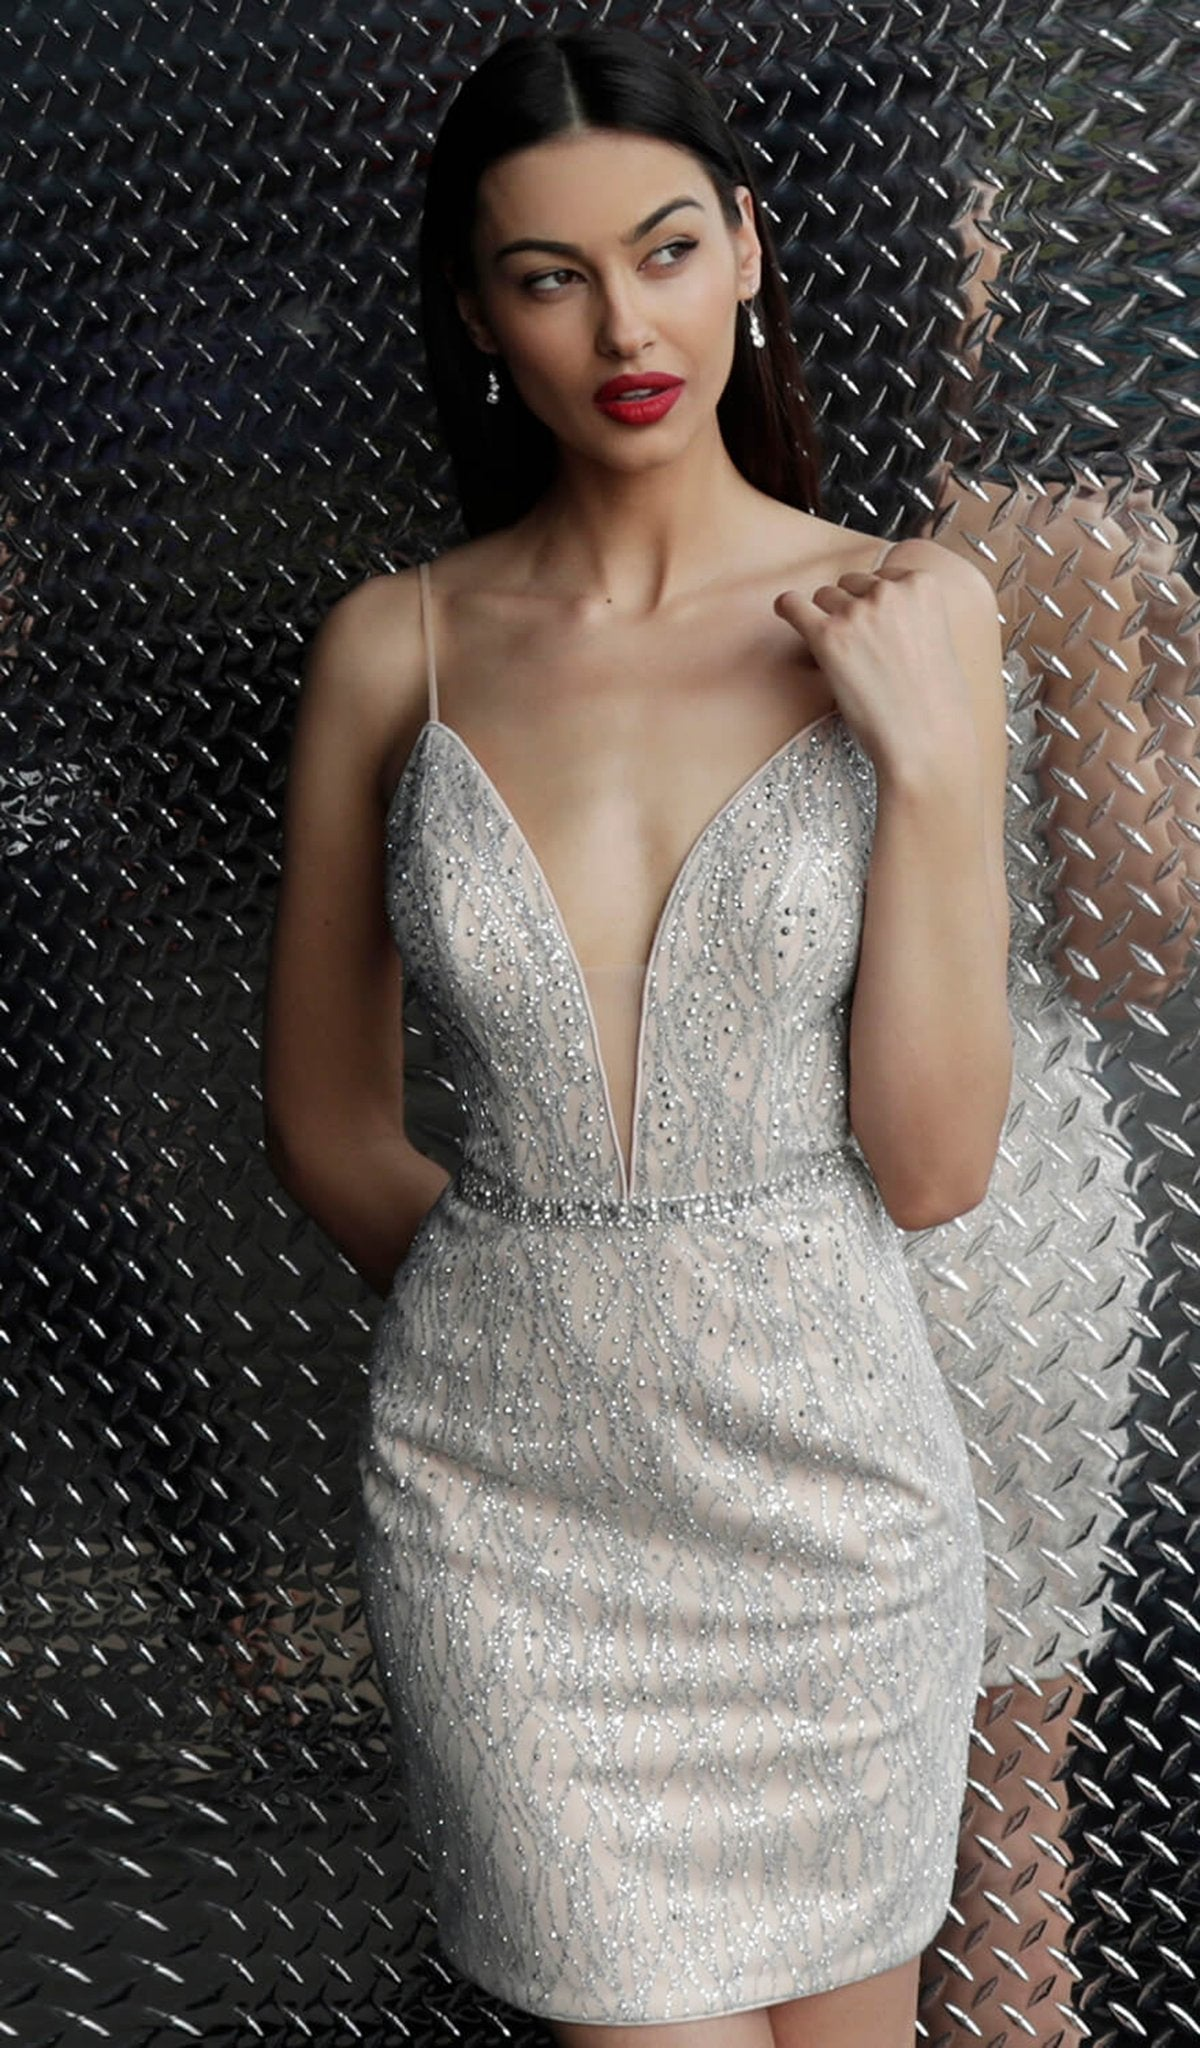 Jovani - 63906 Plunging Illusion Glitter Backless Cocktail Dress In Silver and Nude